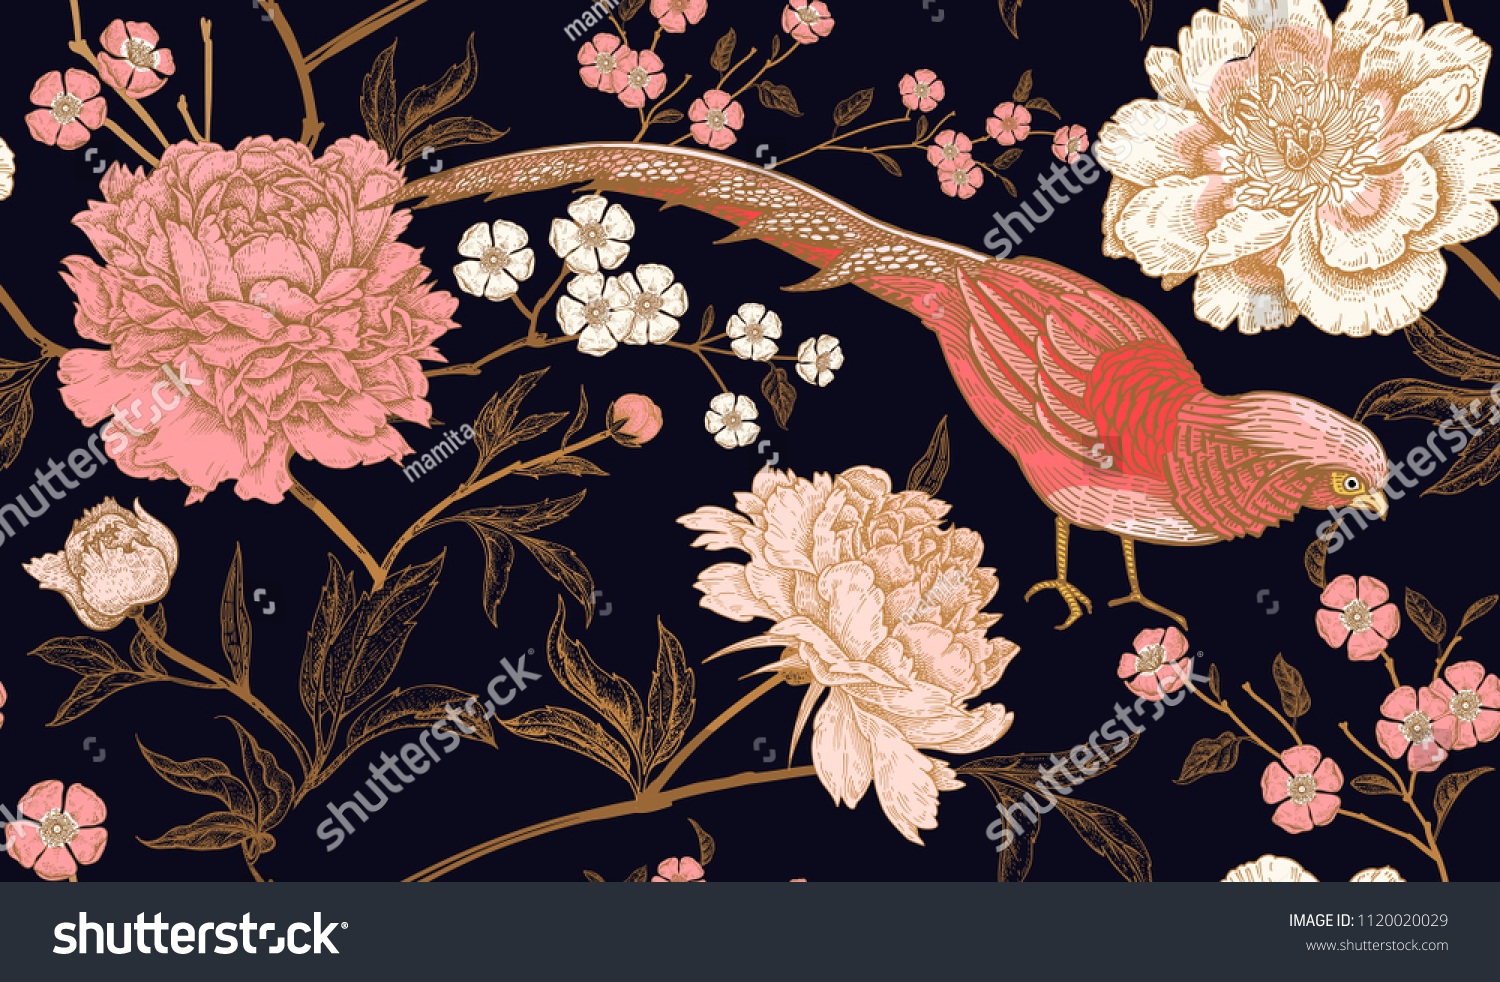 Peonies and pheasants. Floral vintage seamless pattern with flowers and birds. Black, pink and gold color. Oriental style. Vector illustration art. For design textiles, wrapping paper, wallpaper. #1120020029